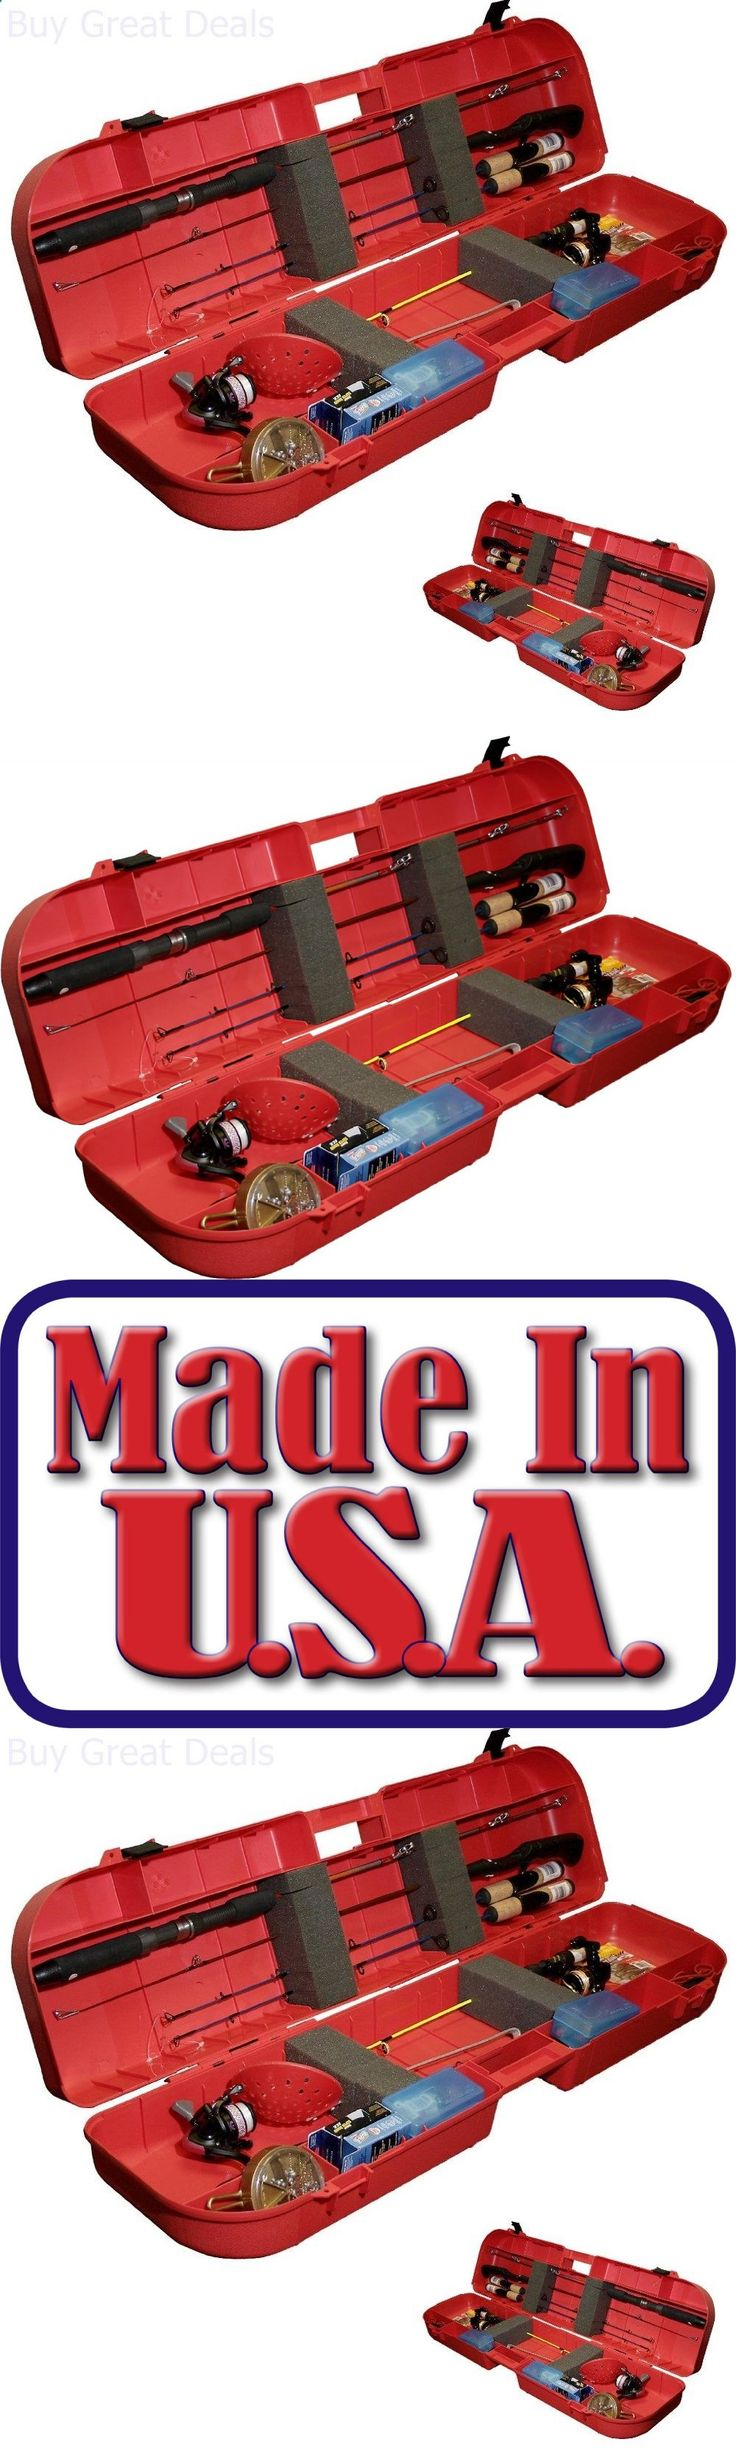 Ice Fishing Rods 179947: Case Box Fishing Rod Tackle Accessories Storage Holder Pole Reels Outdoor Travel -> BUY IT NOW ONLY: $46.93 on eBay!